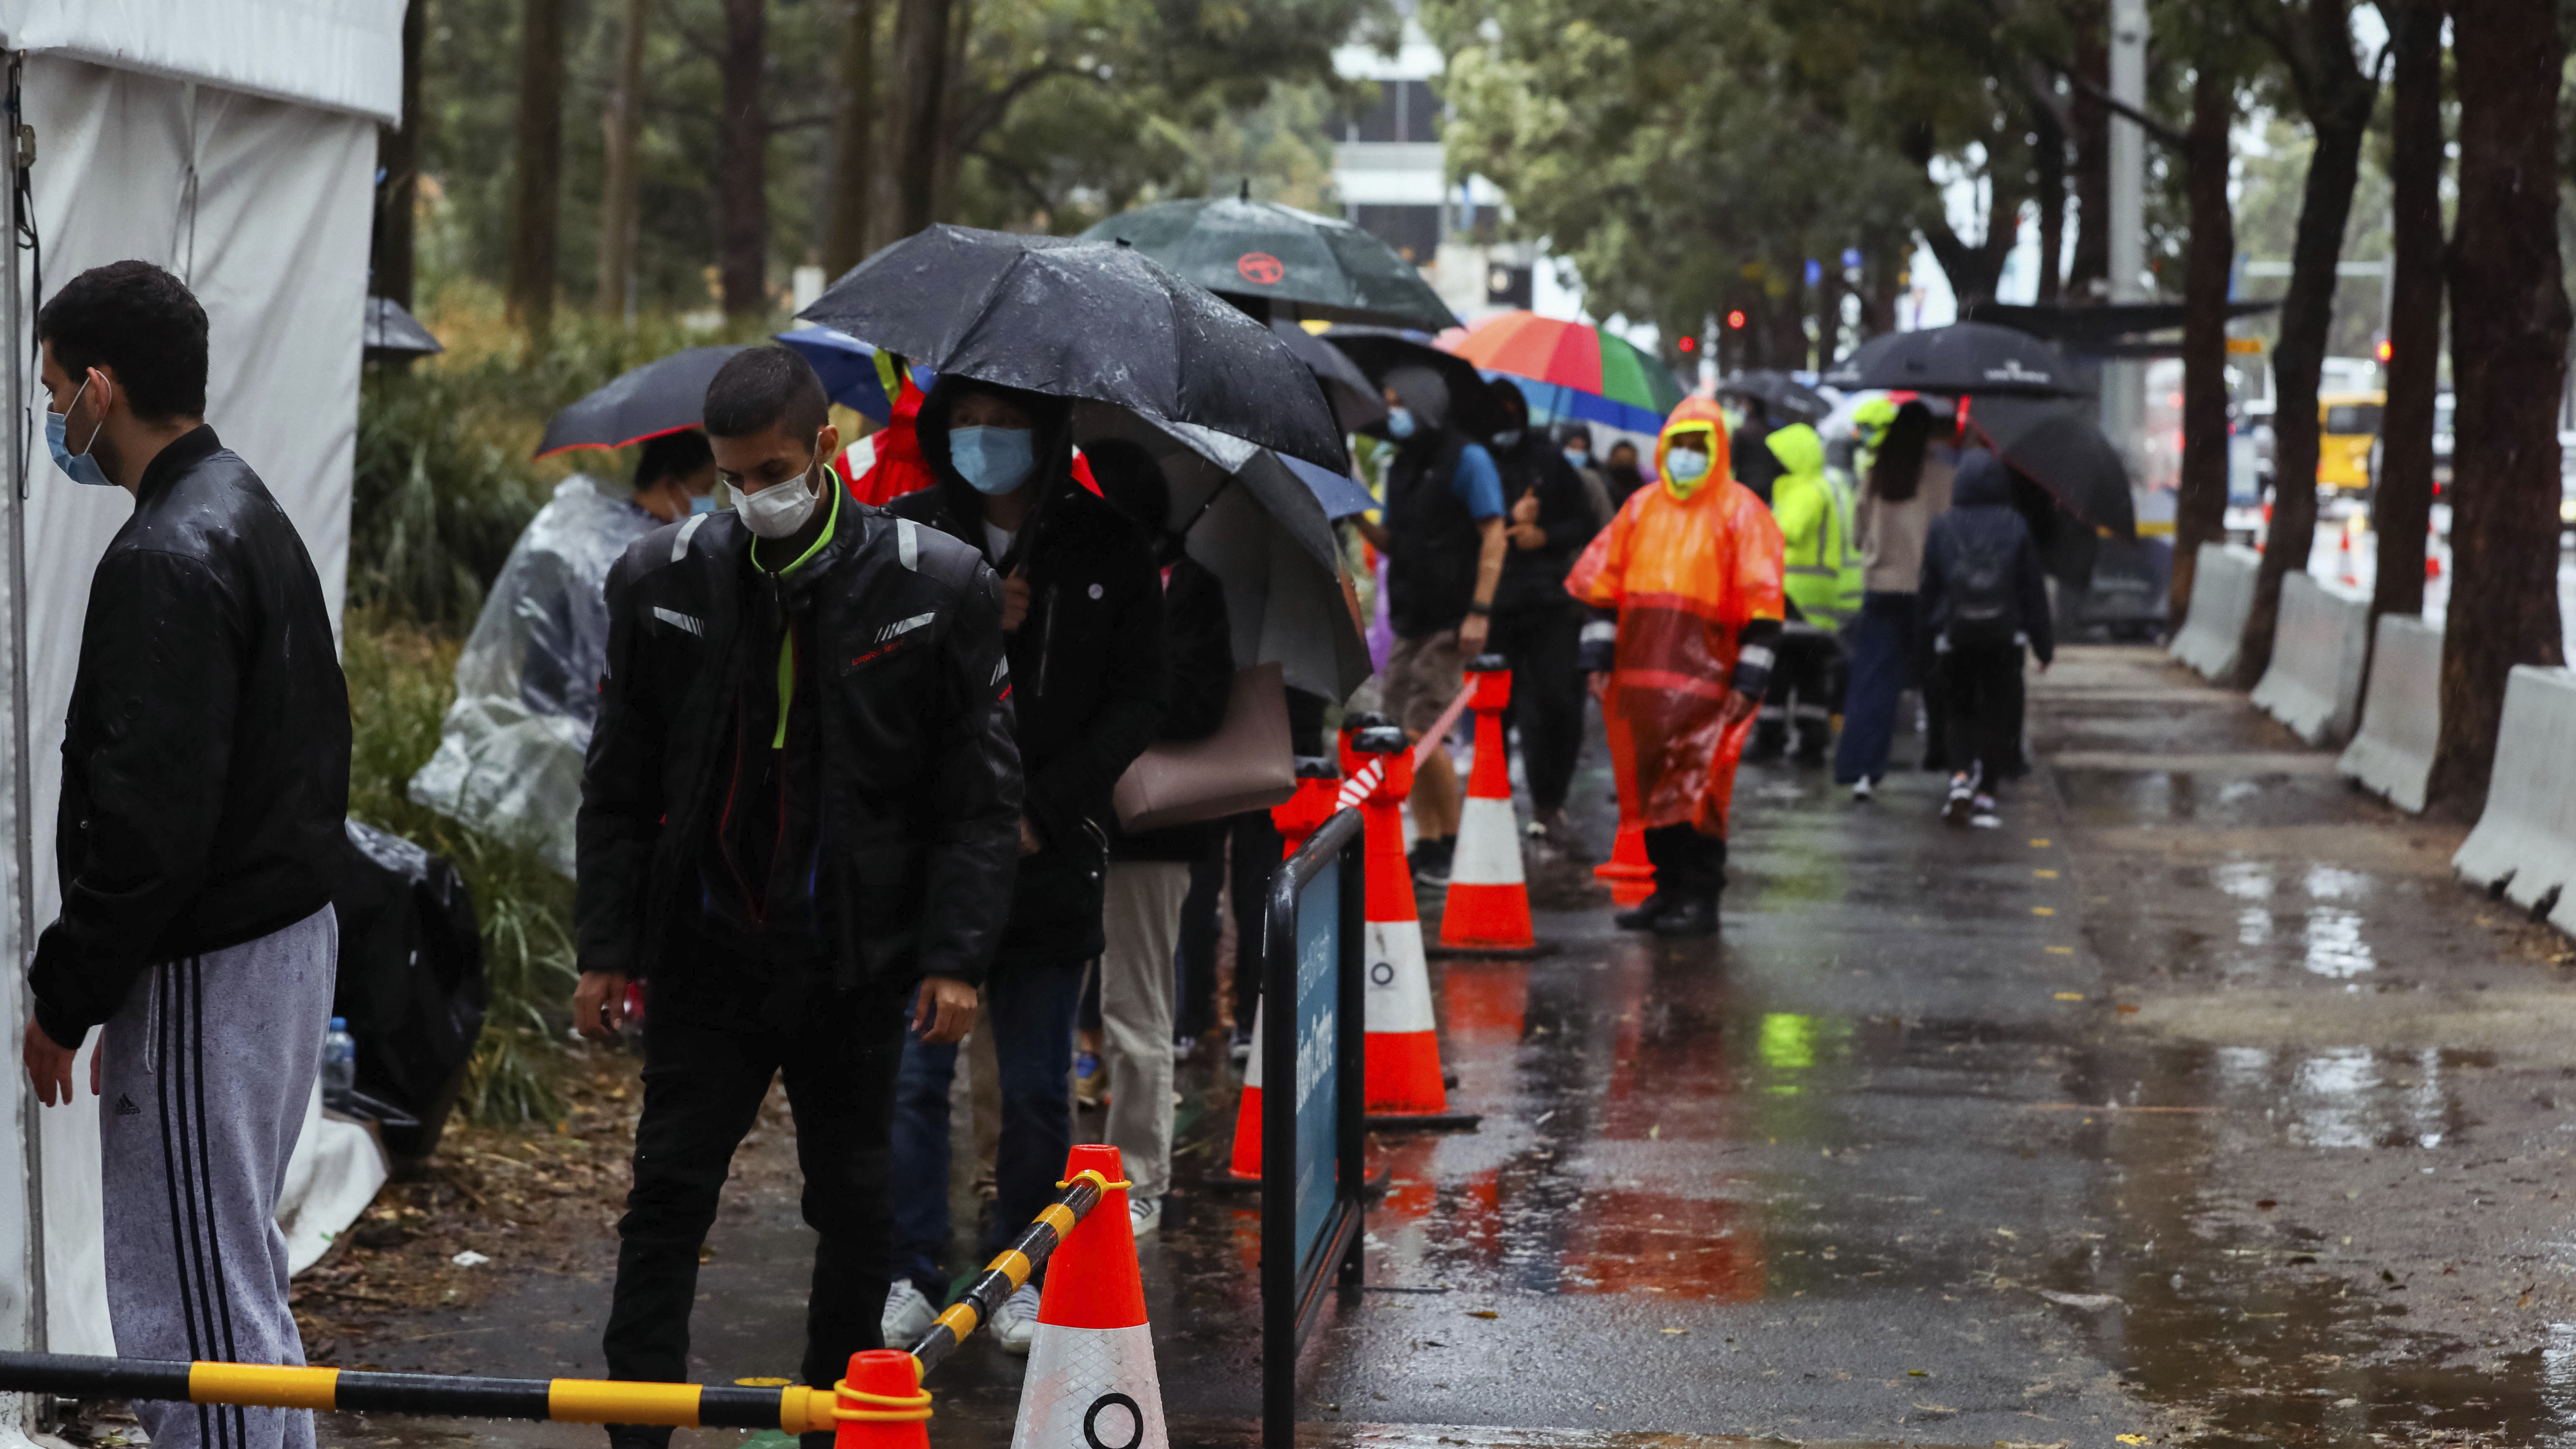 People line up to receive their covid-19 vaccination despite wet weather at the Sydney Olympic Park Vaccination Centre in Sydney.